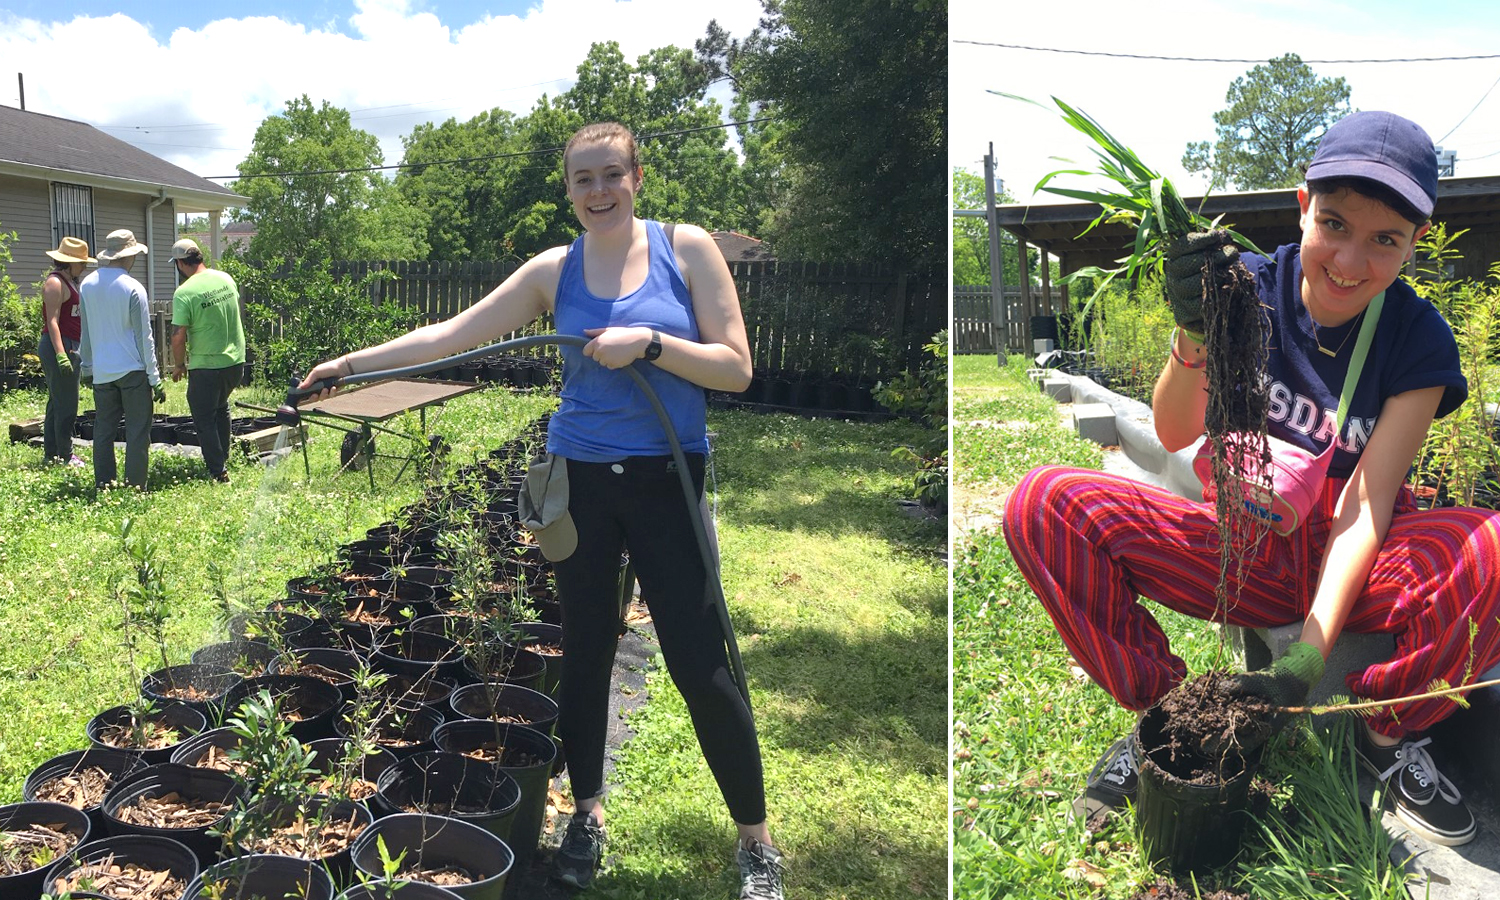 Riley Sayers (left) has found a good use for her long arms! Cami Fredericks (right) rescues a tree sapling from the massive root system of an invasive grass.